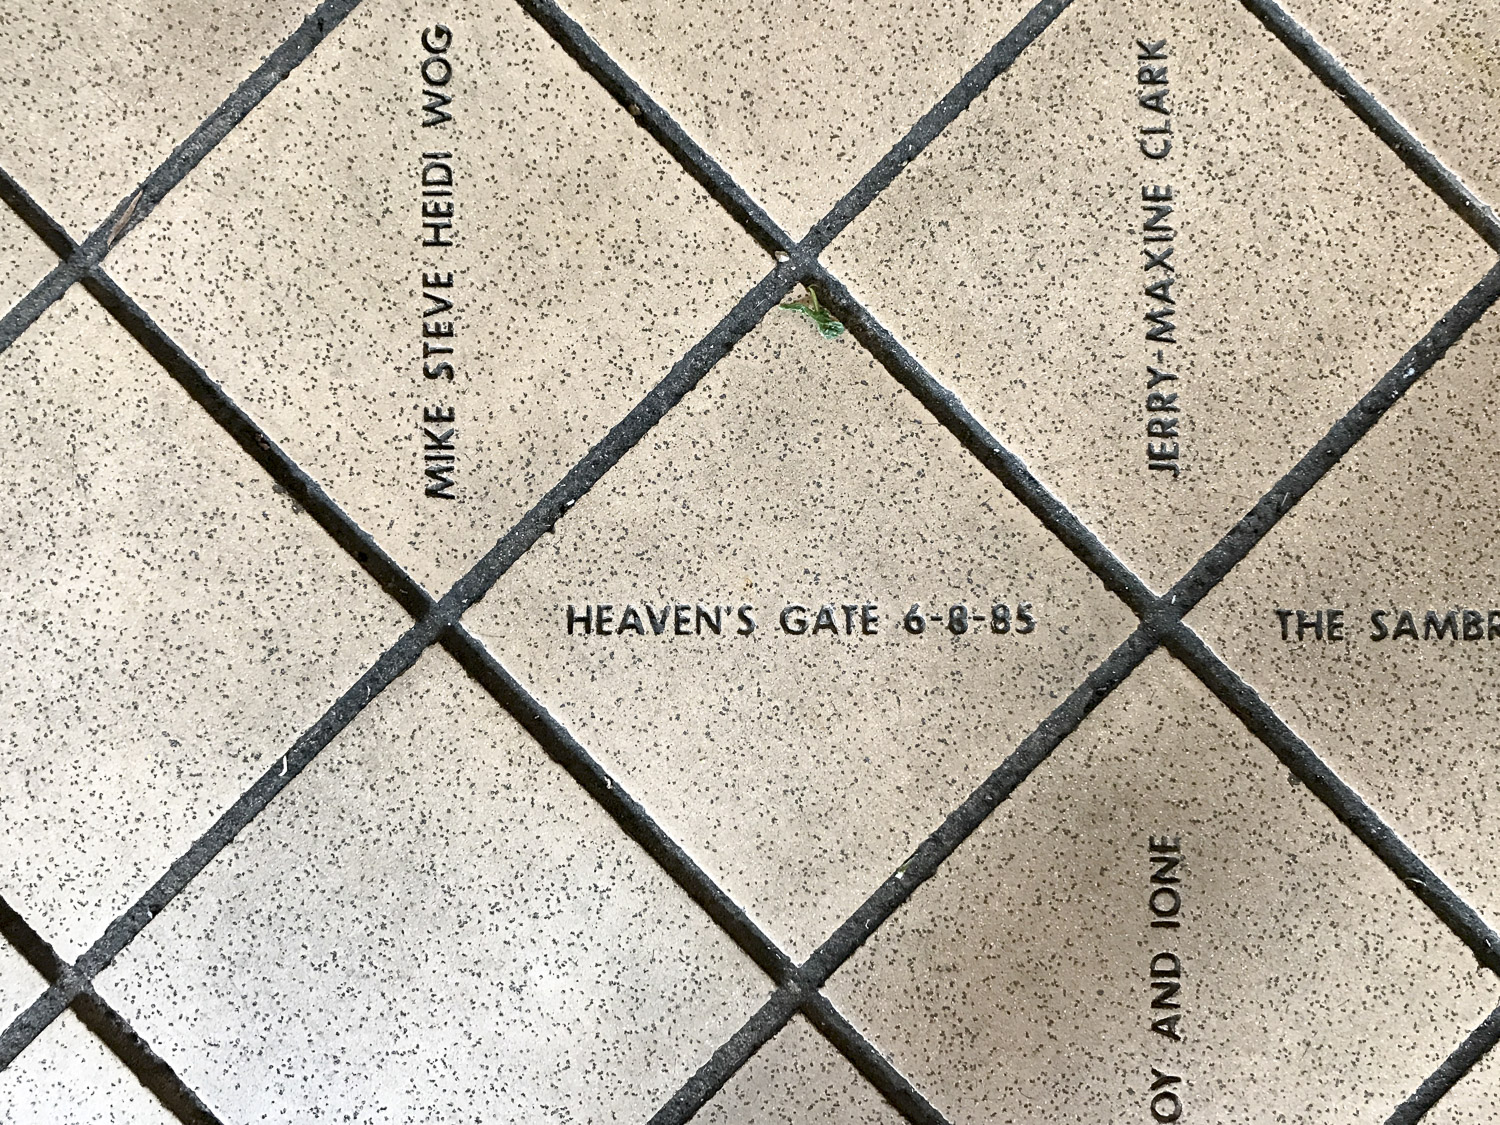 Heavens Gate Tile at Pike Place Market